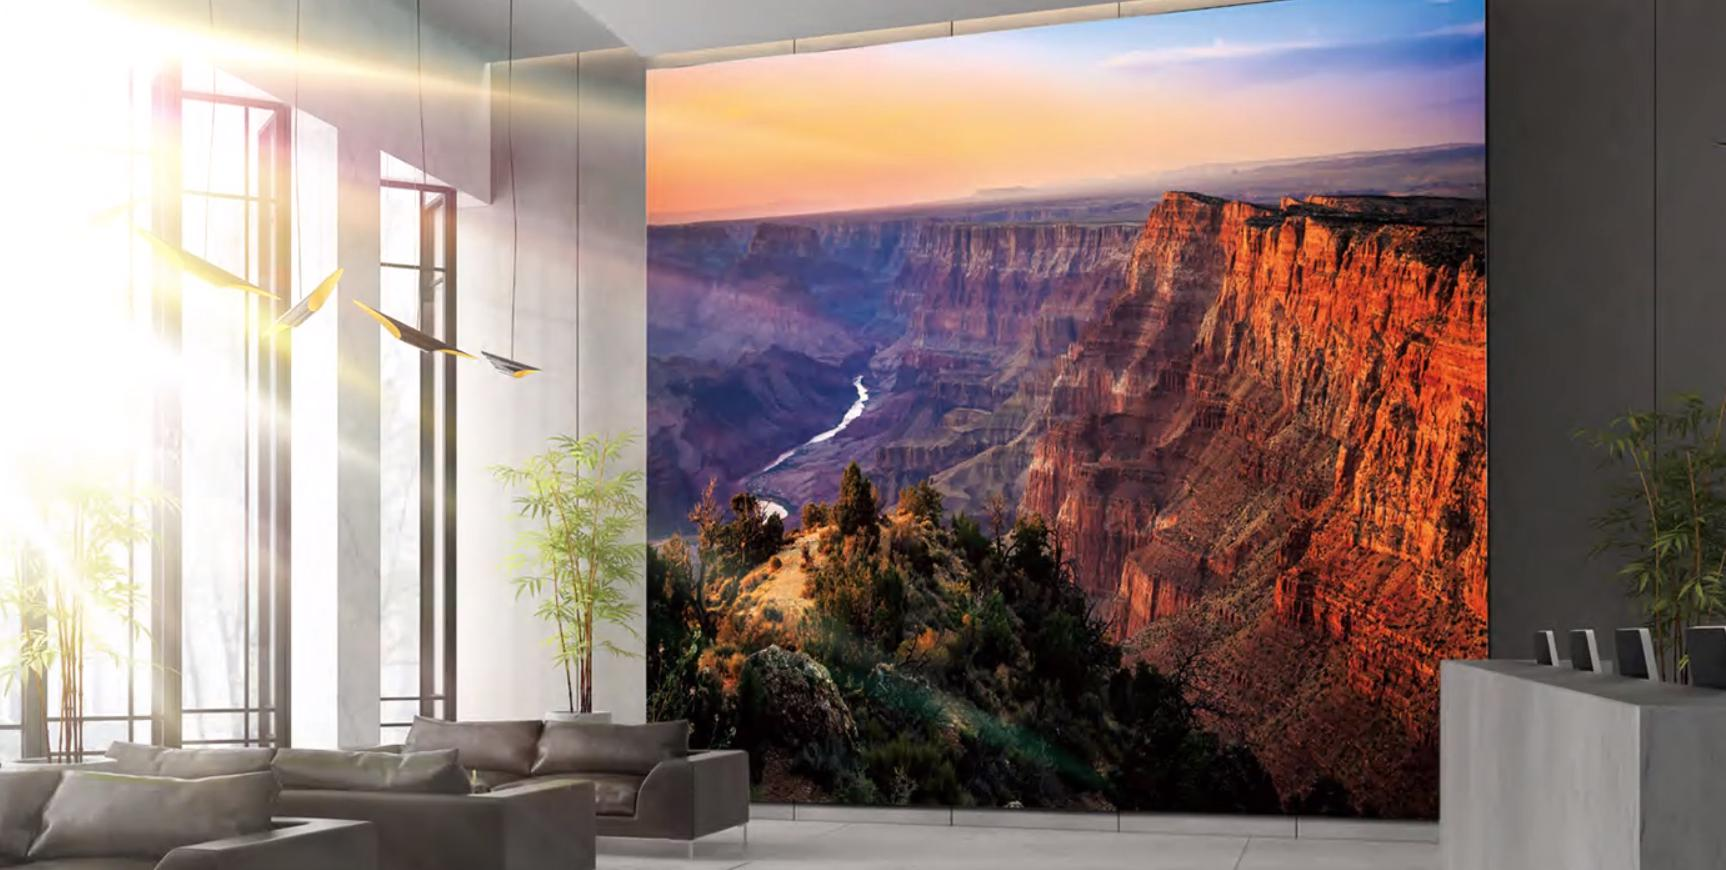 Samsung The Wall Luxury Modular Display